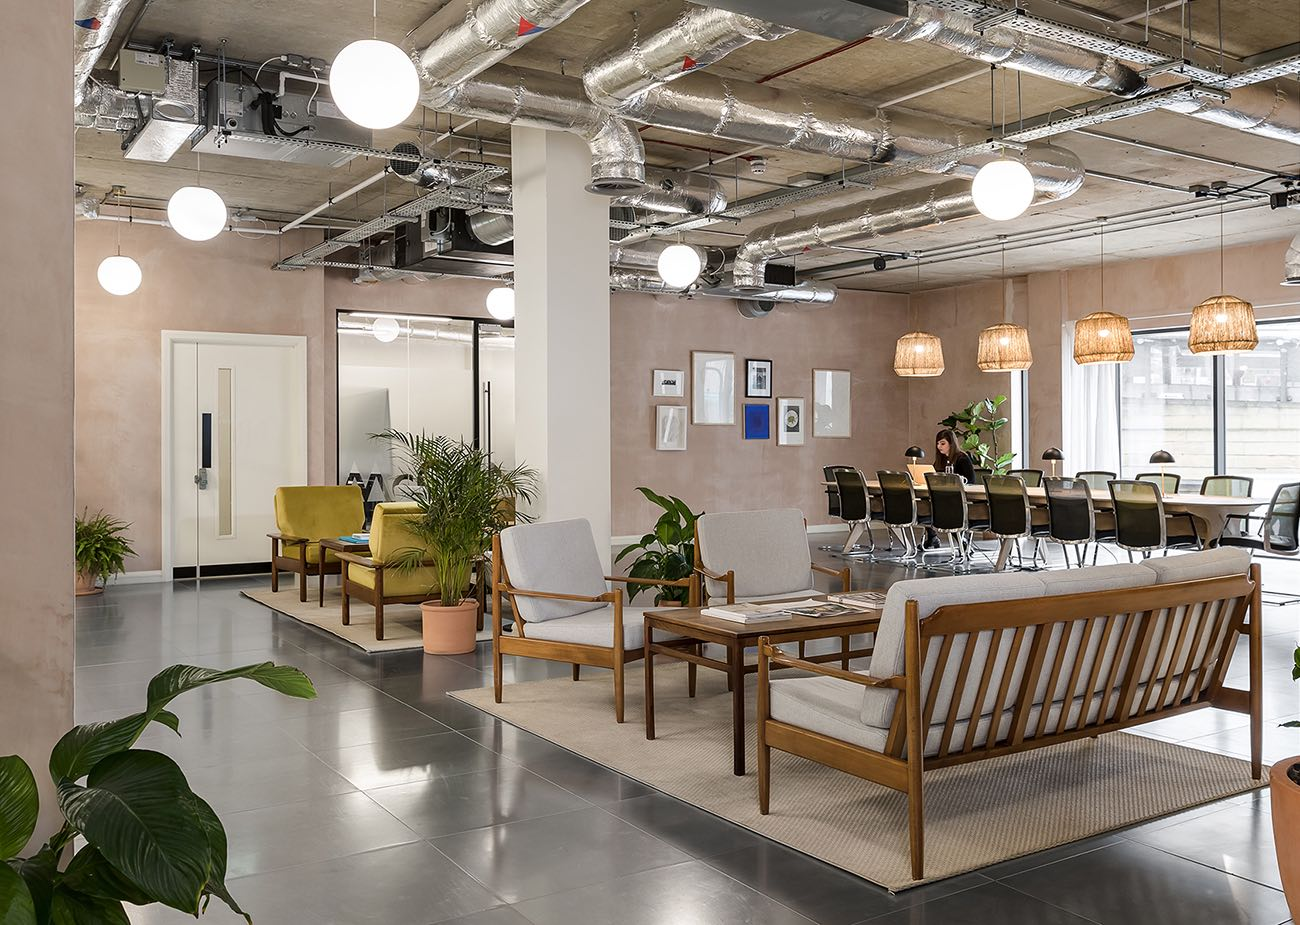 A Look Inside Kinrise's New Leeds Office